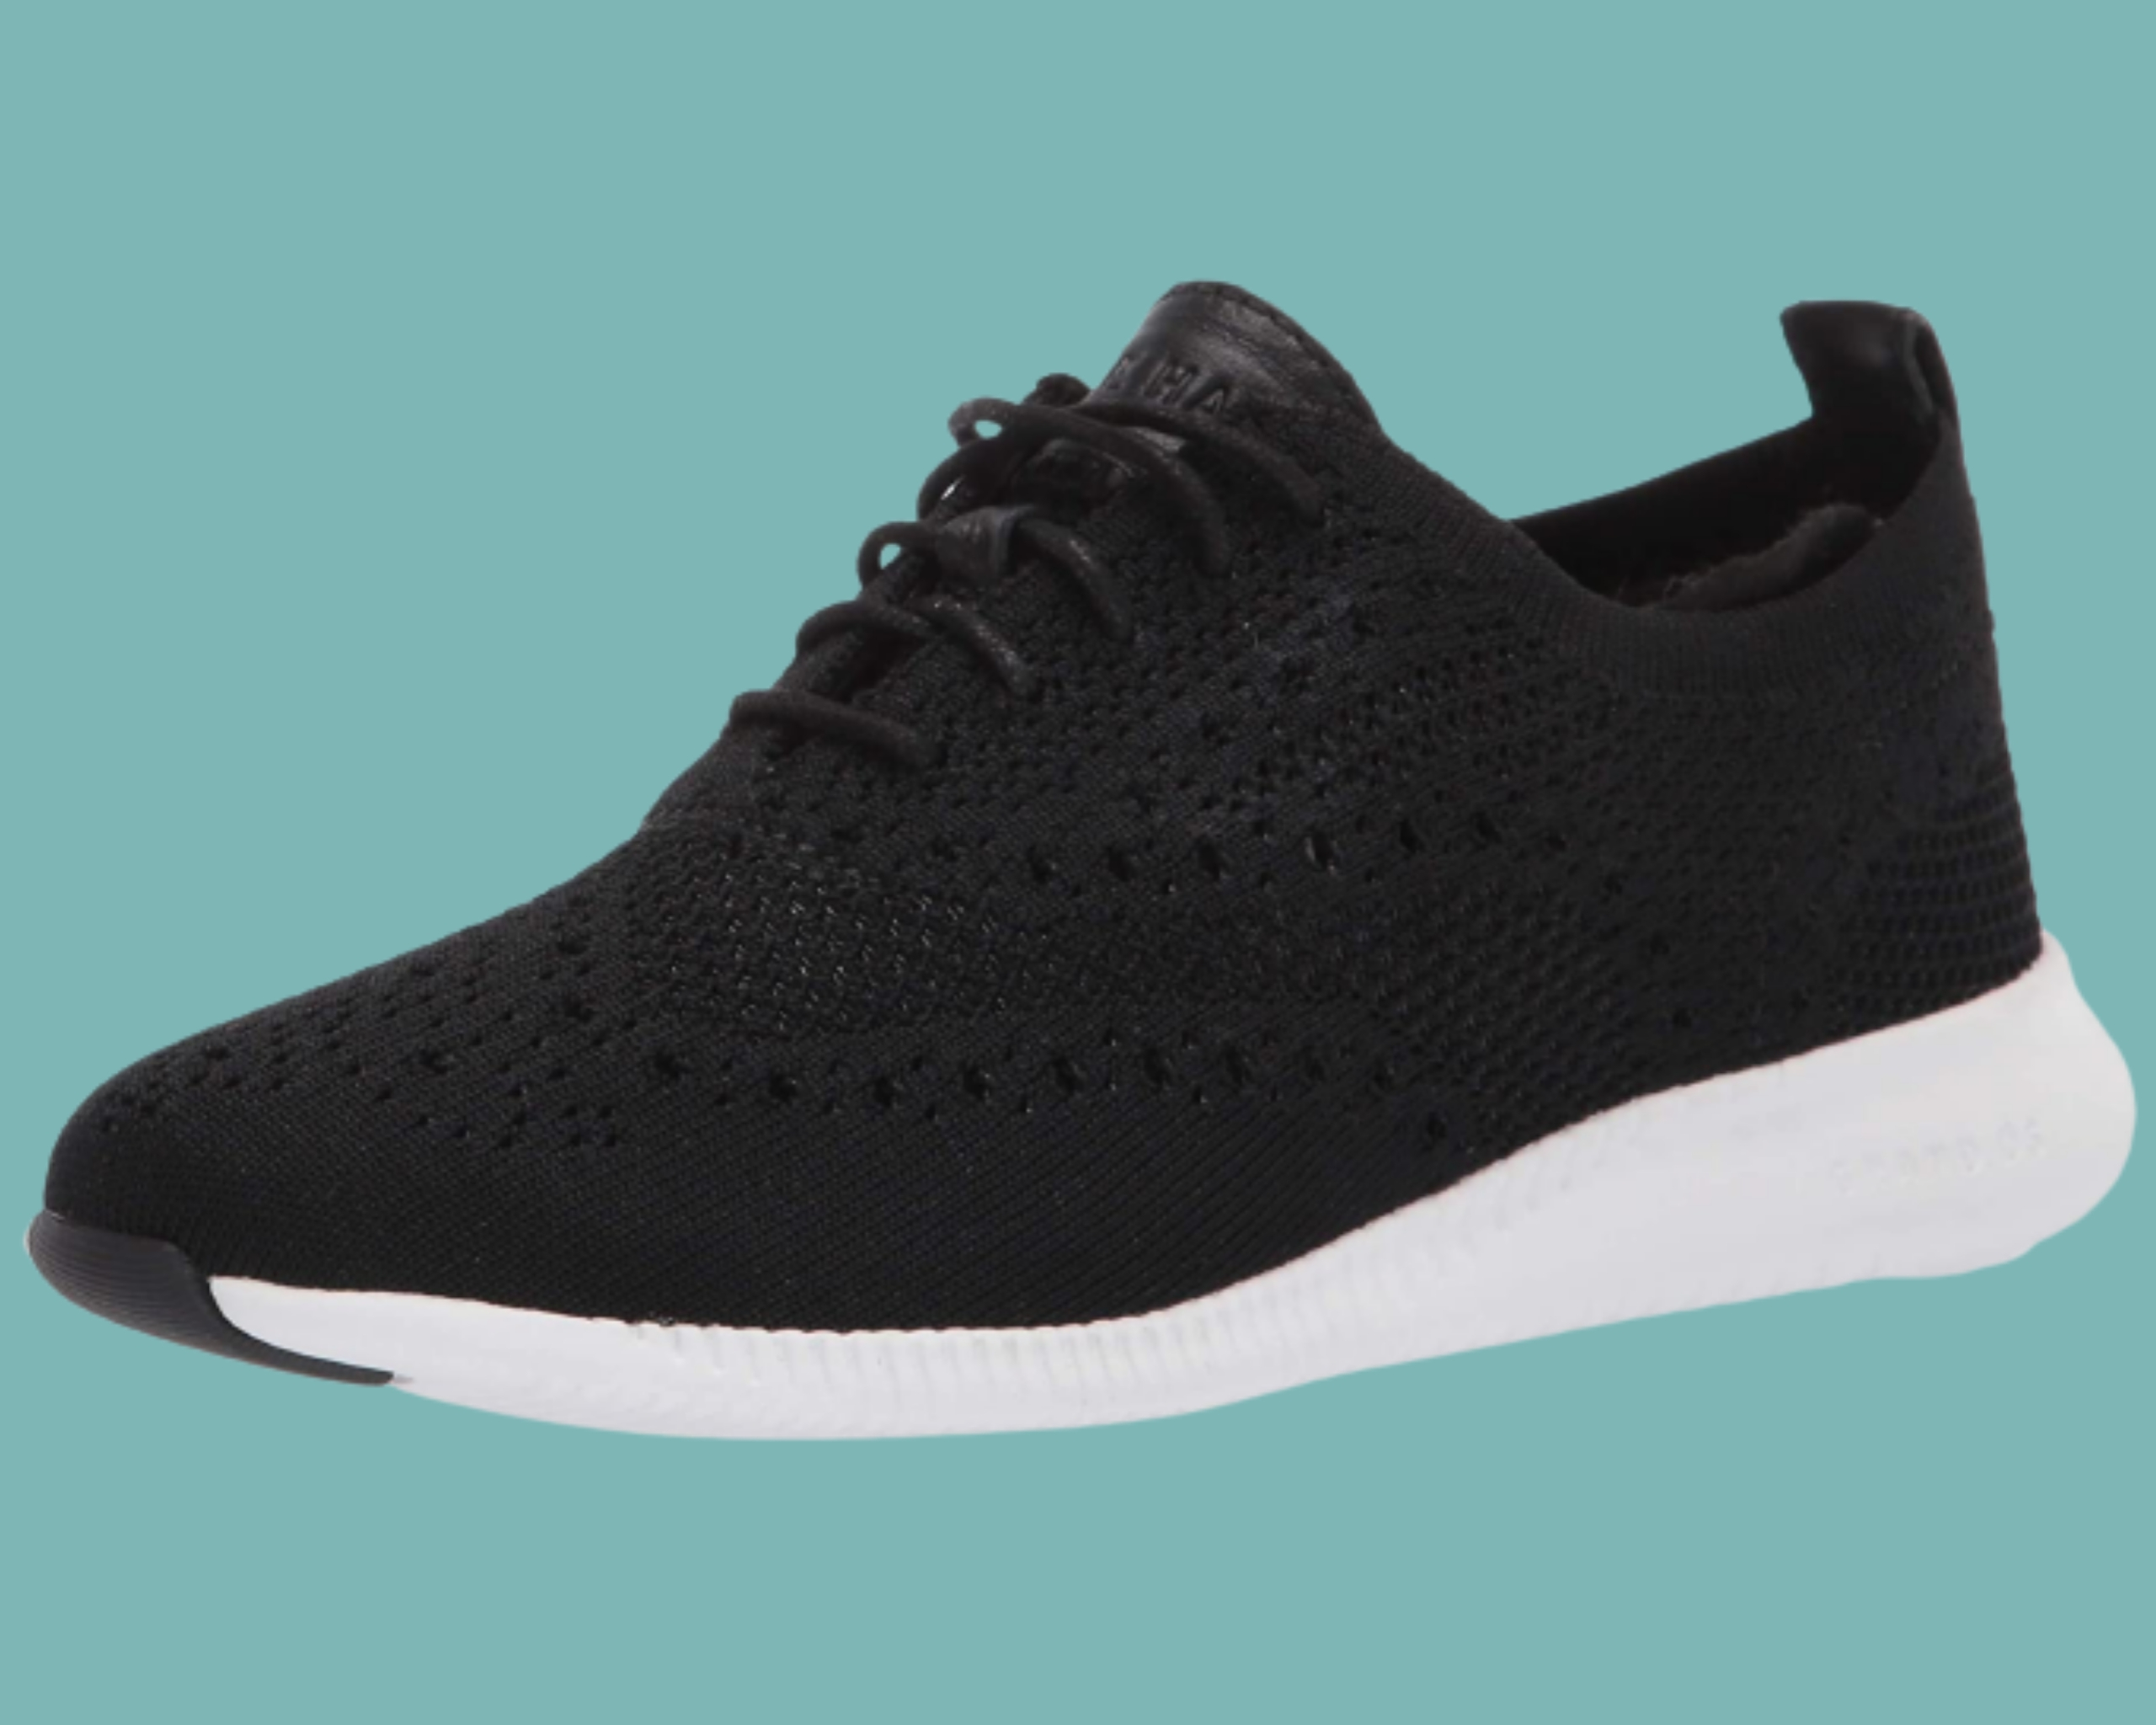 Oxford Sneakers for Women